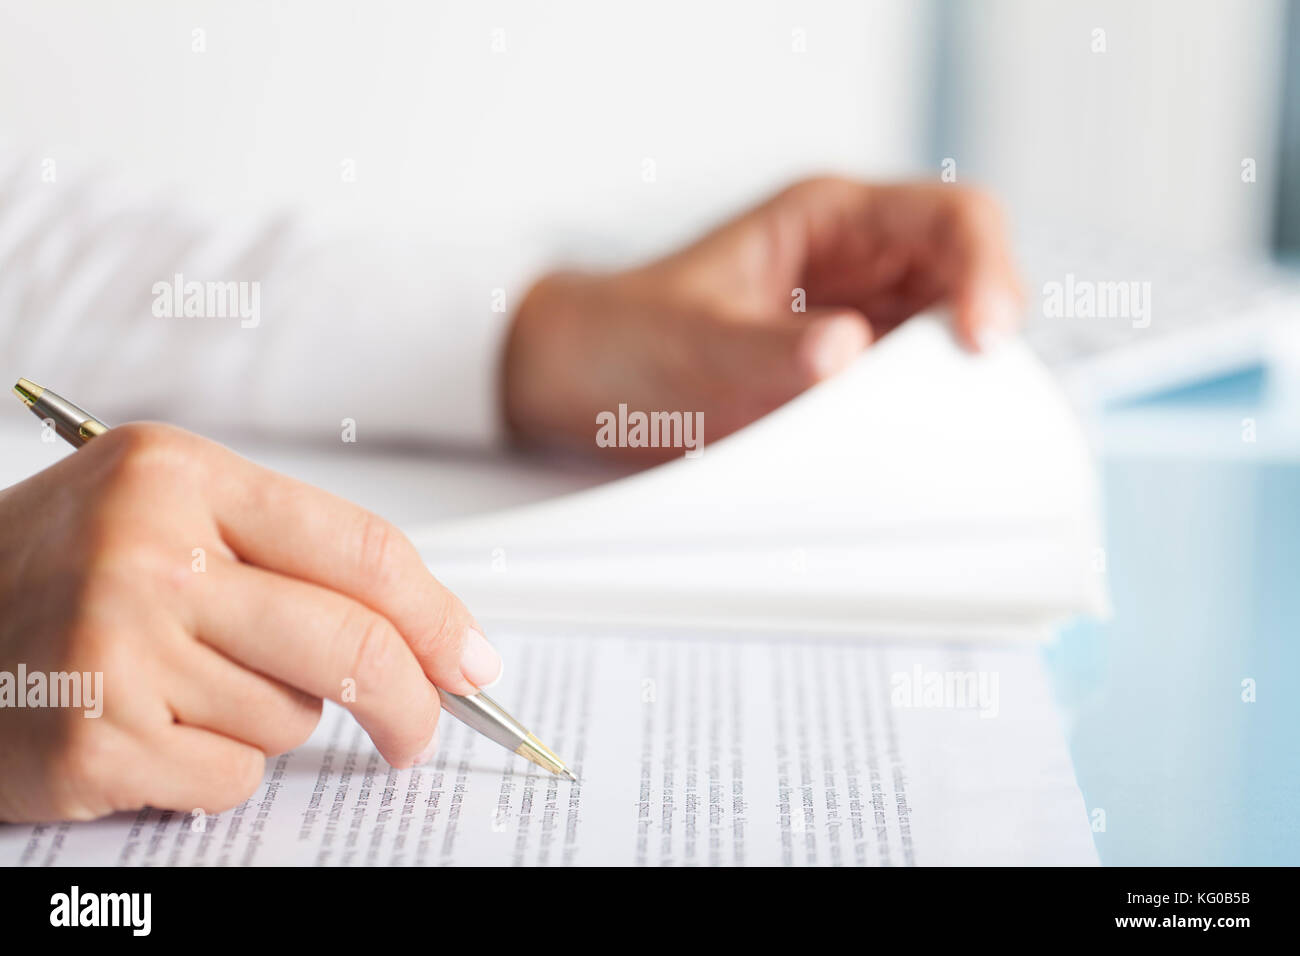 Close-up of a businesswoman's hand with a pen writing something. Stock Photo